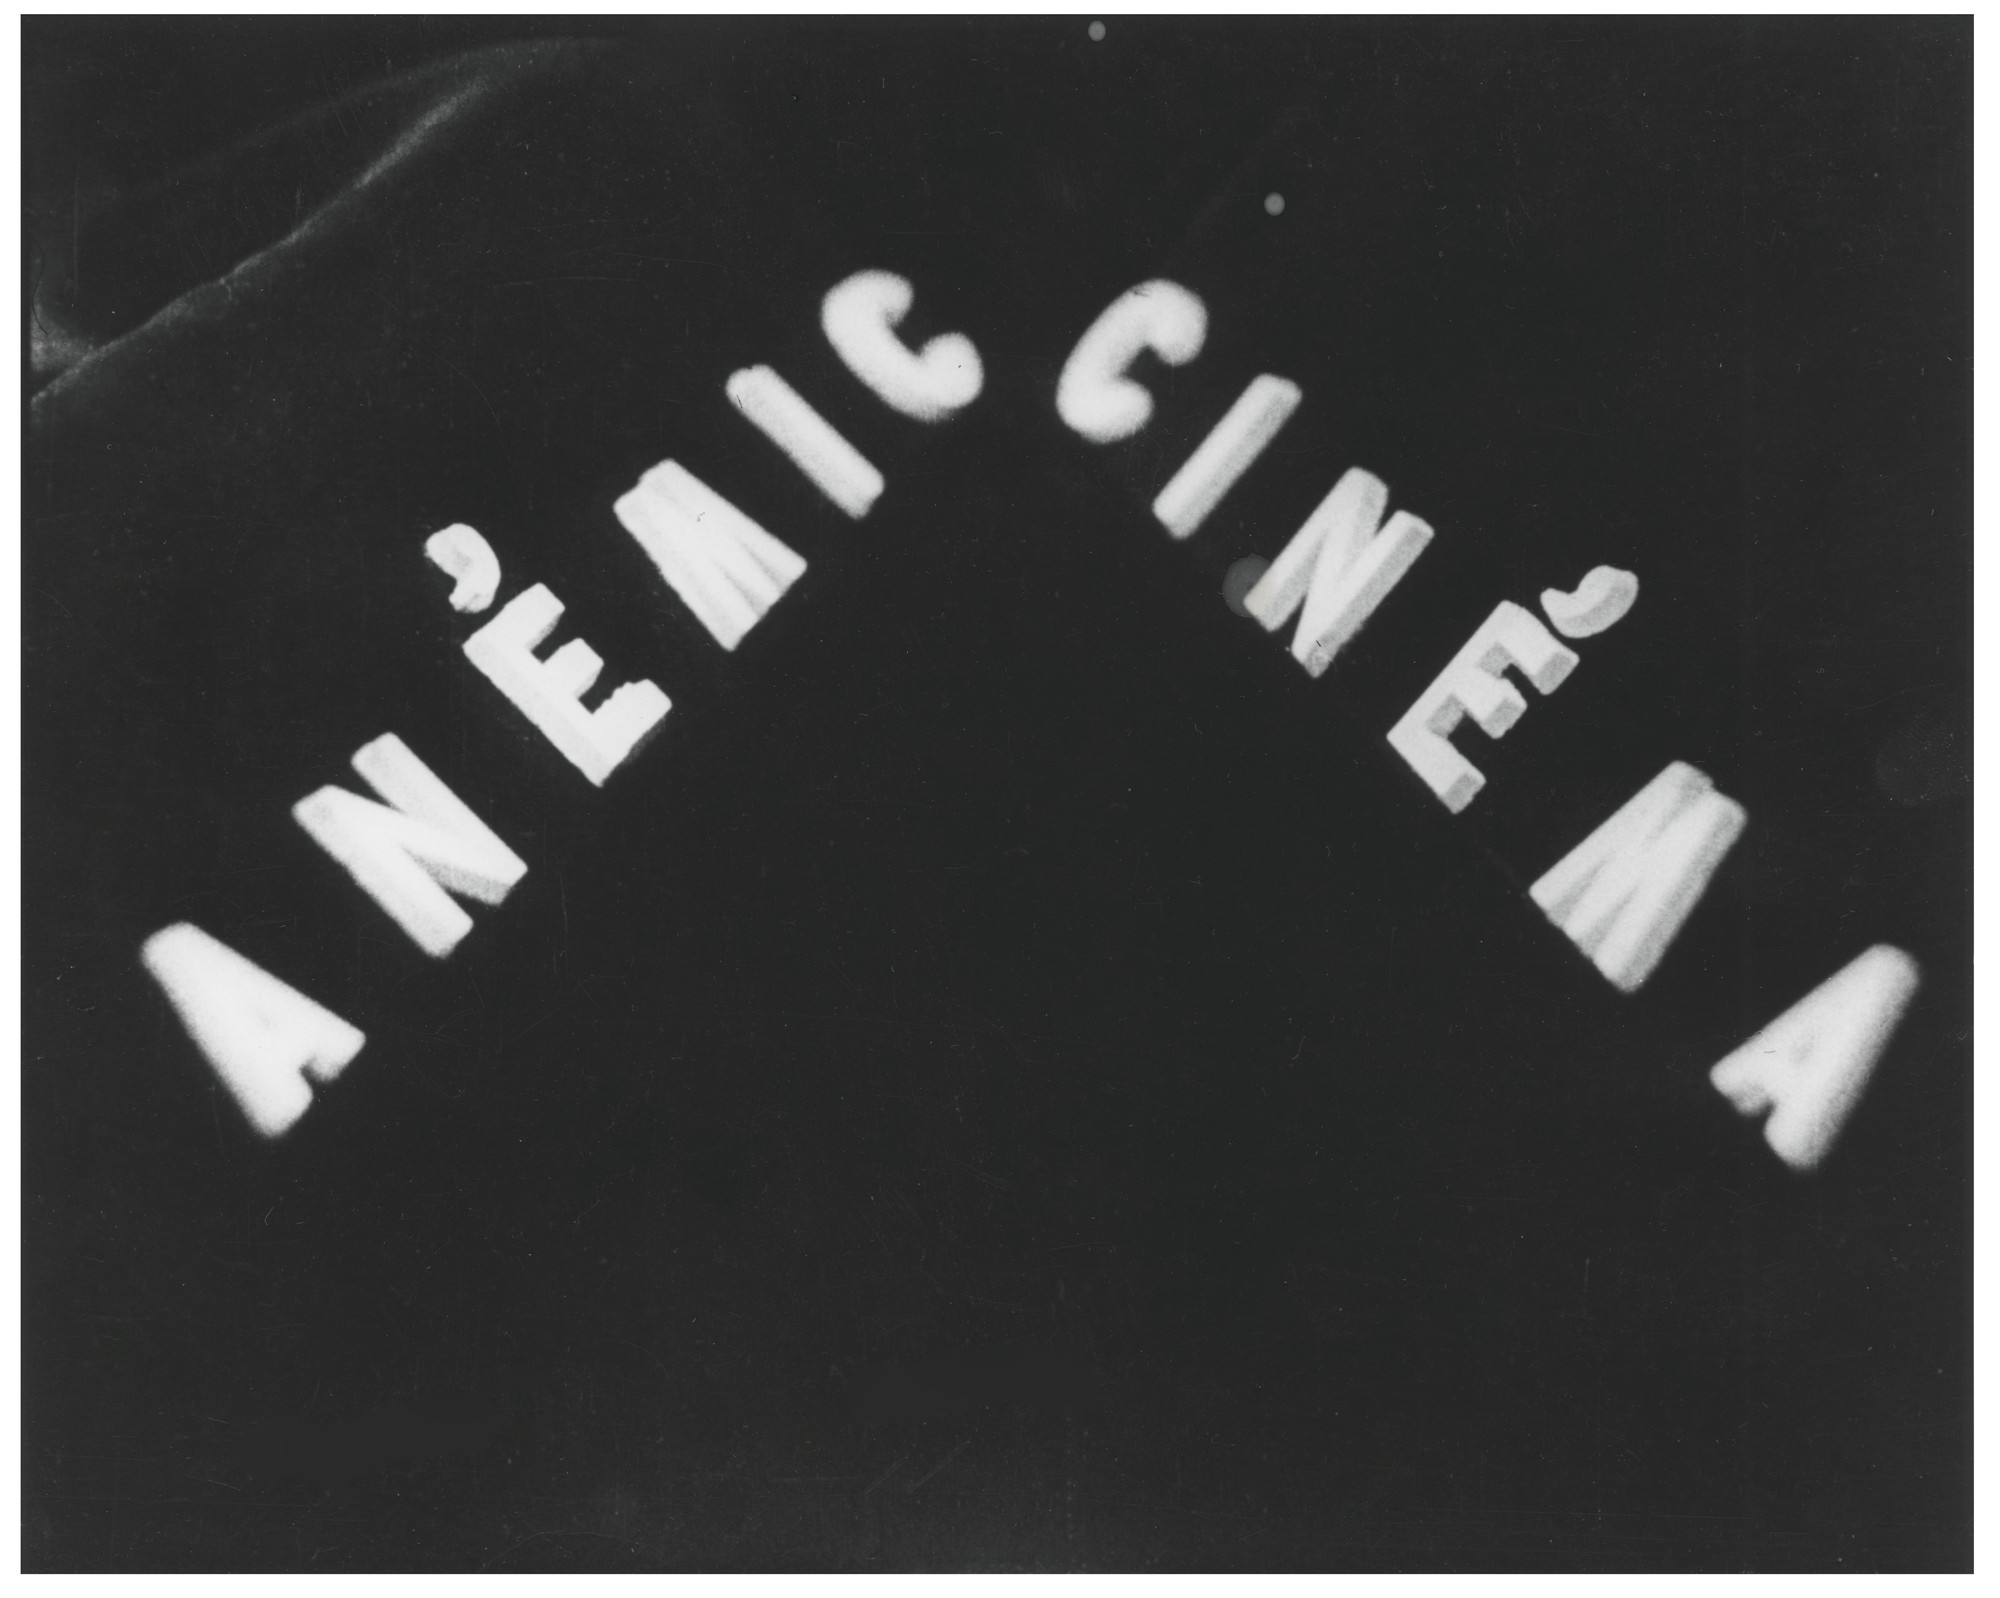 Marcel Duchamp. Anemic Cinema. 1926